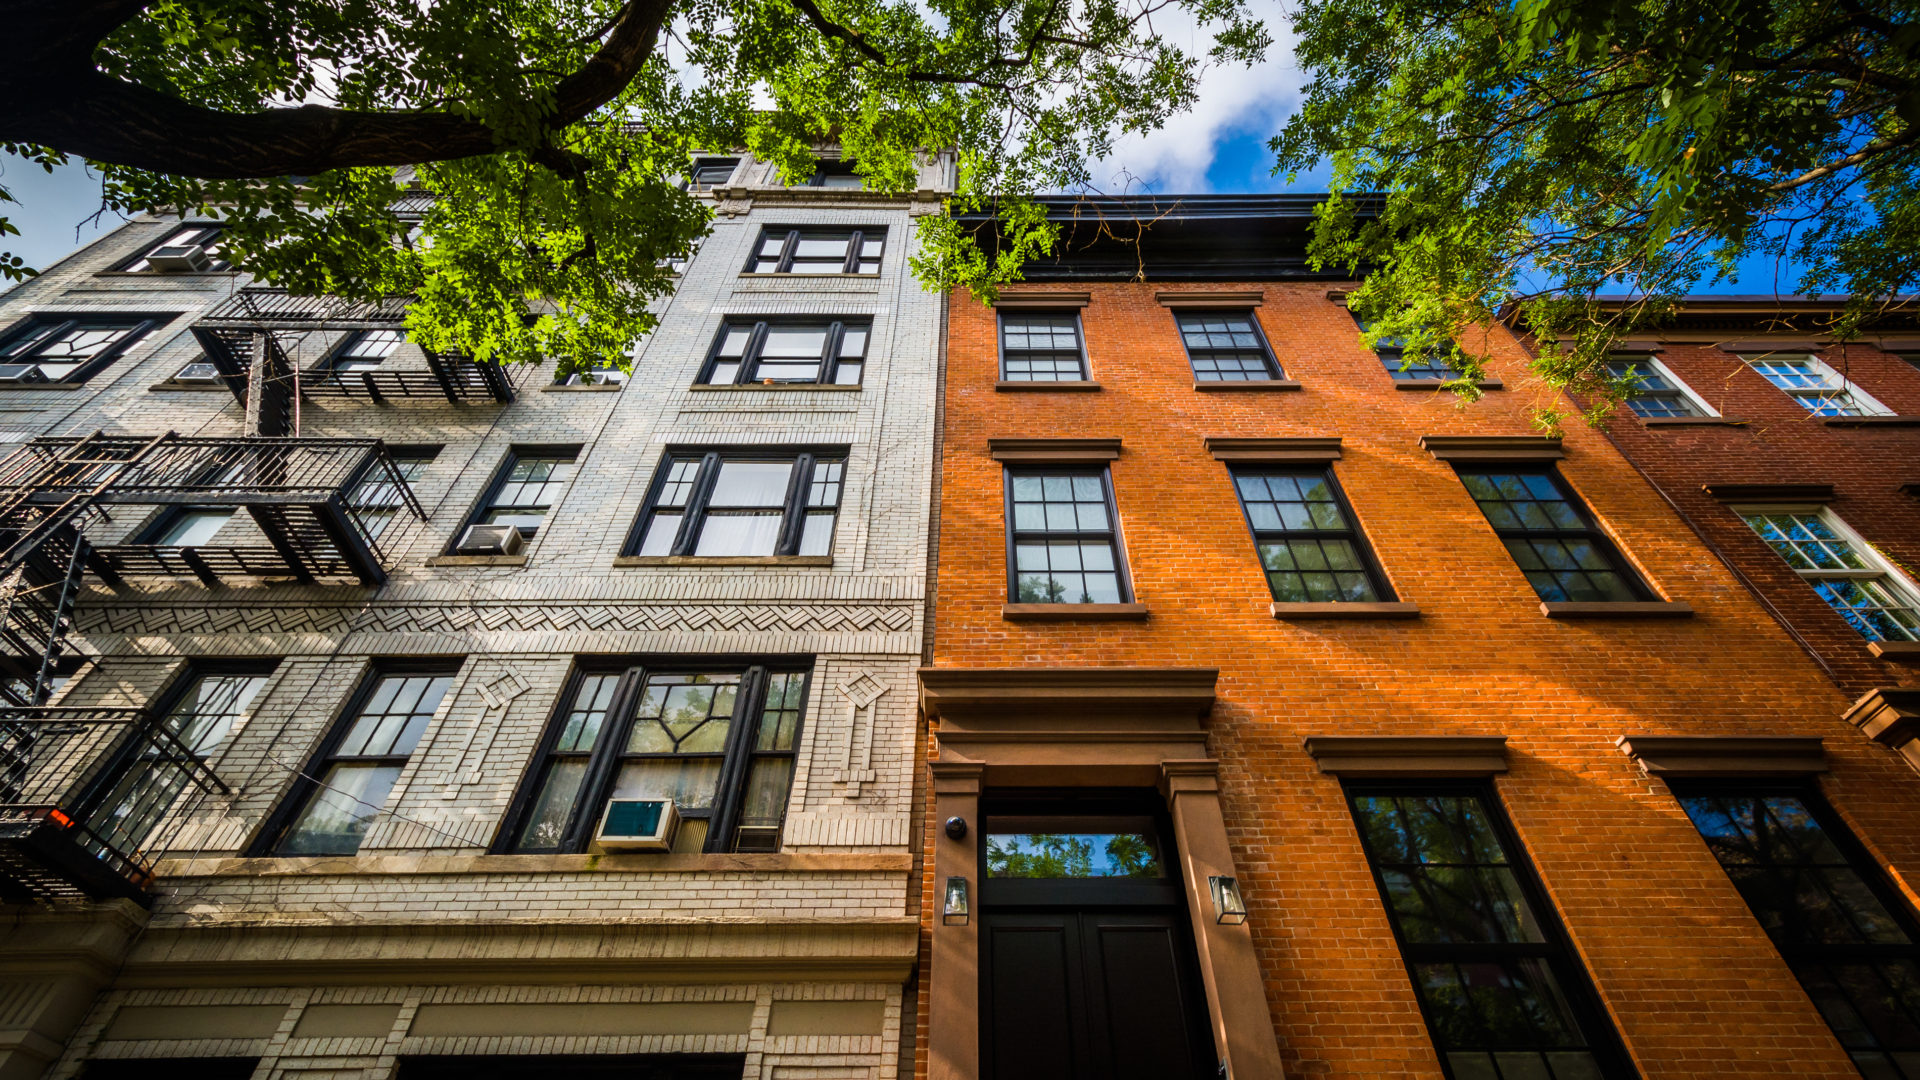 NYC Landlords Lie To Get Building Permits, More Than 10k Falsified Permit Applications in 2.5 Years